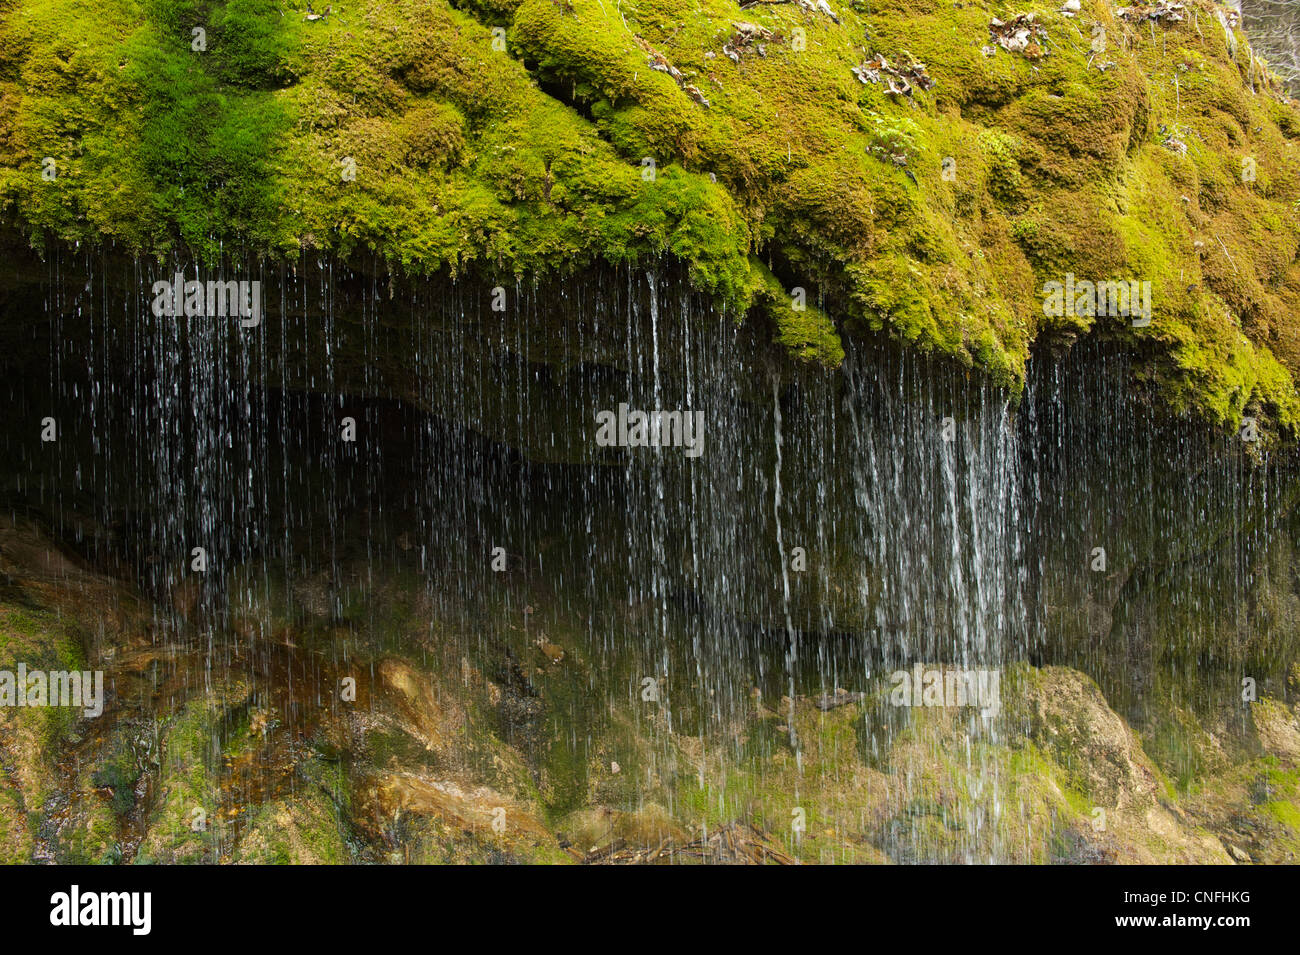 Water falls like a curtain from a mossy ledge in the Wutach Gorge - Stock Image